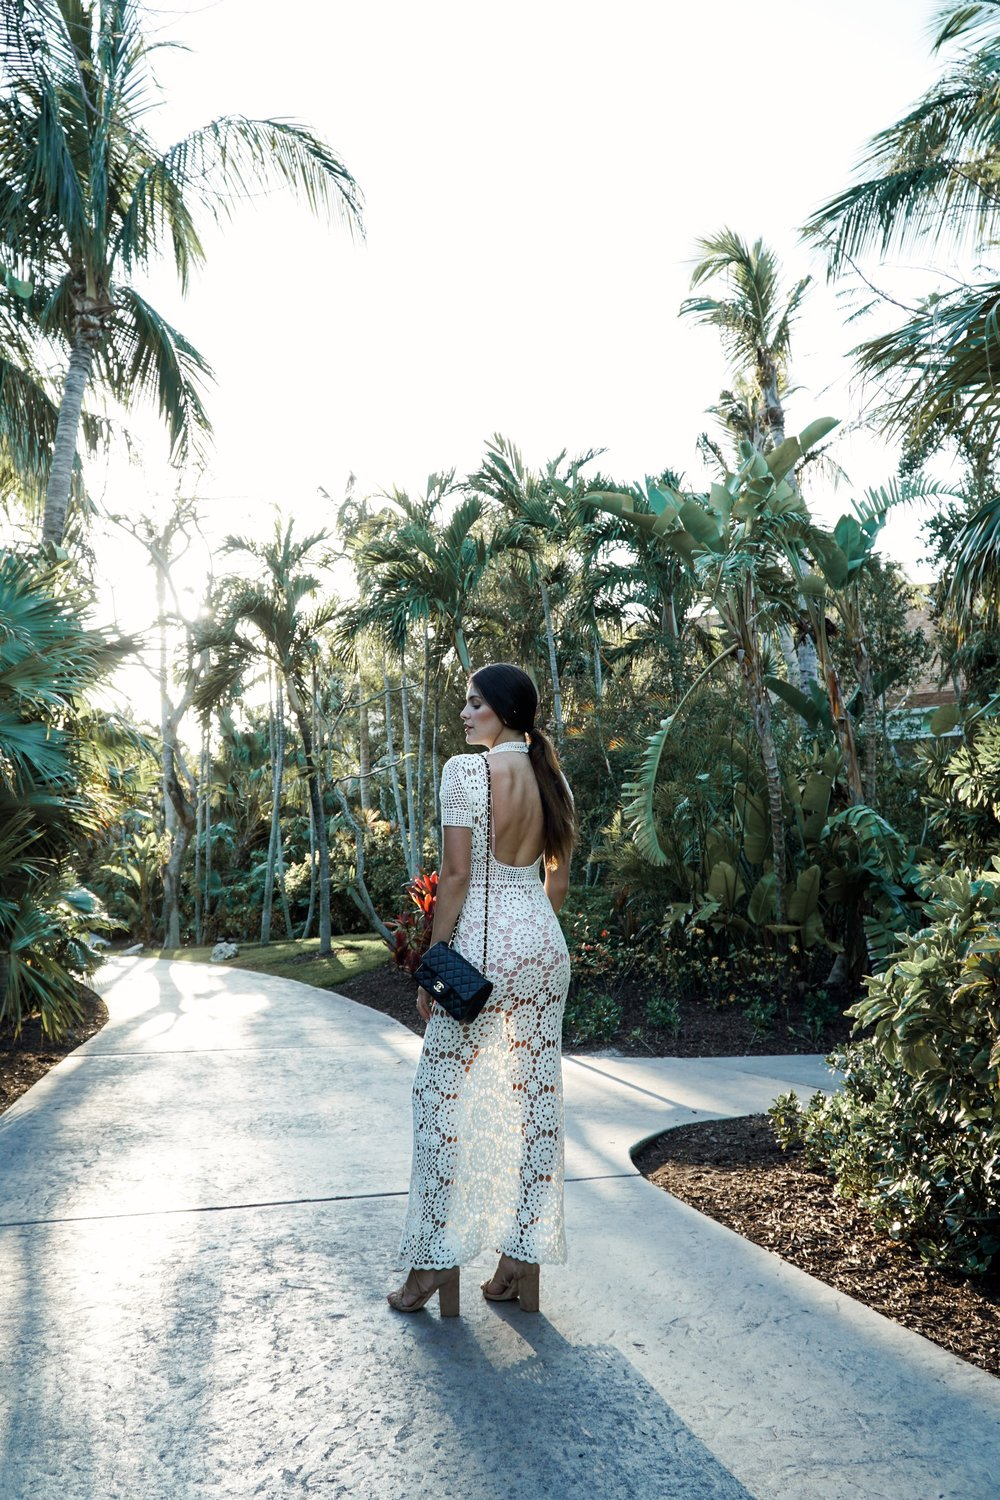 Julia Friedman wears the Majorelle Therese Dress paired with Raye Lulu heels from Revolve Clothing during her trip to the One&Only Ocean Club in the Bahamas.